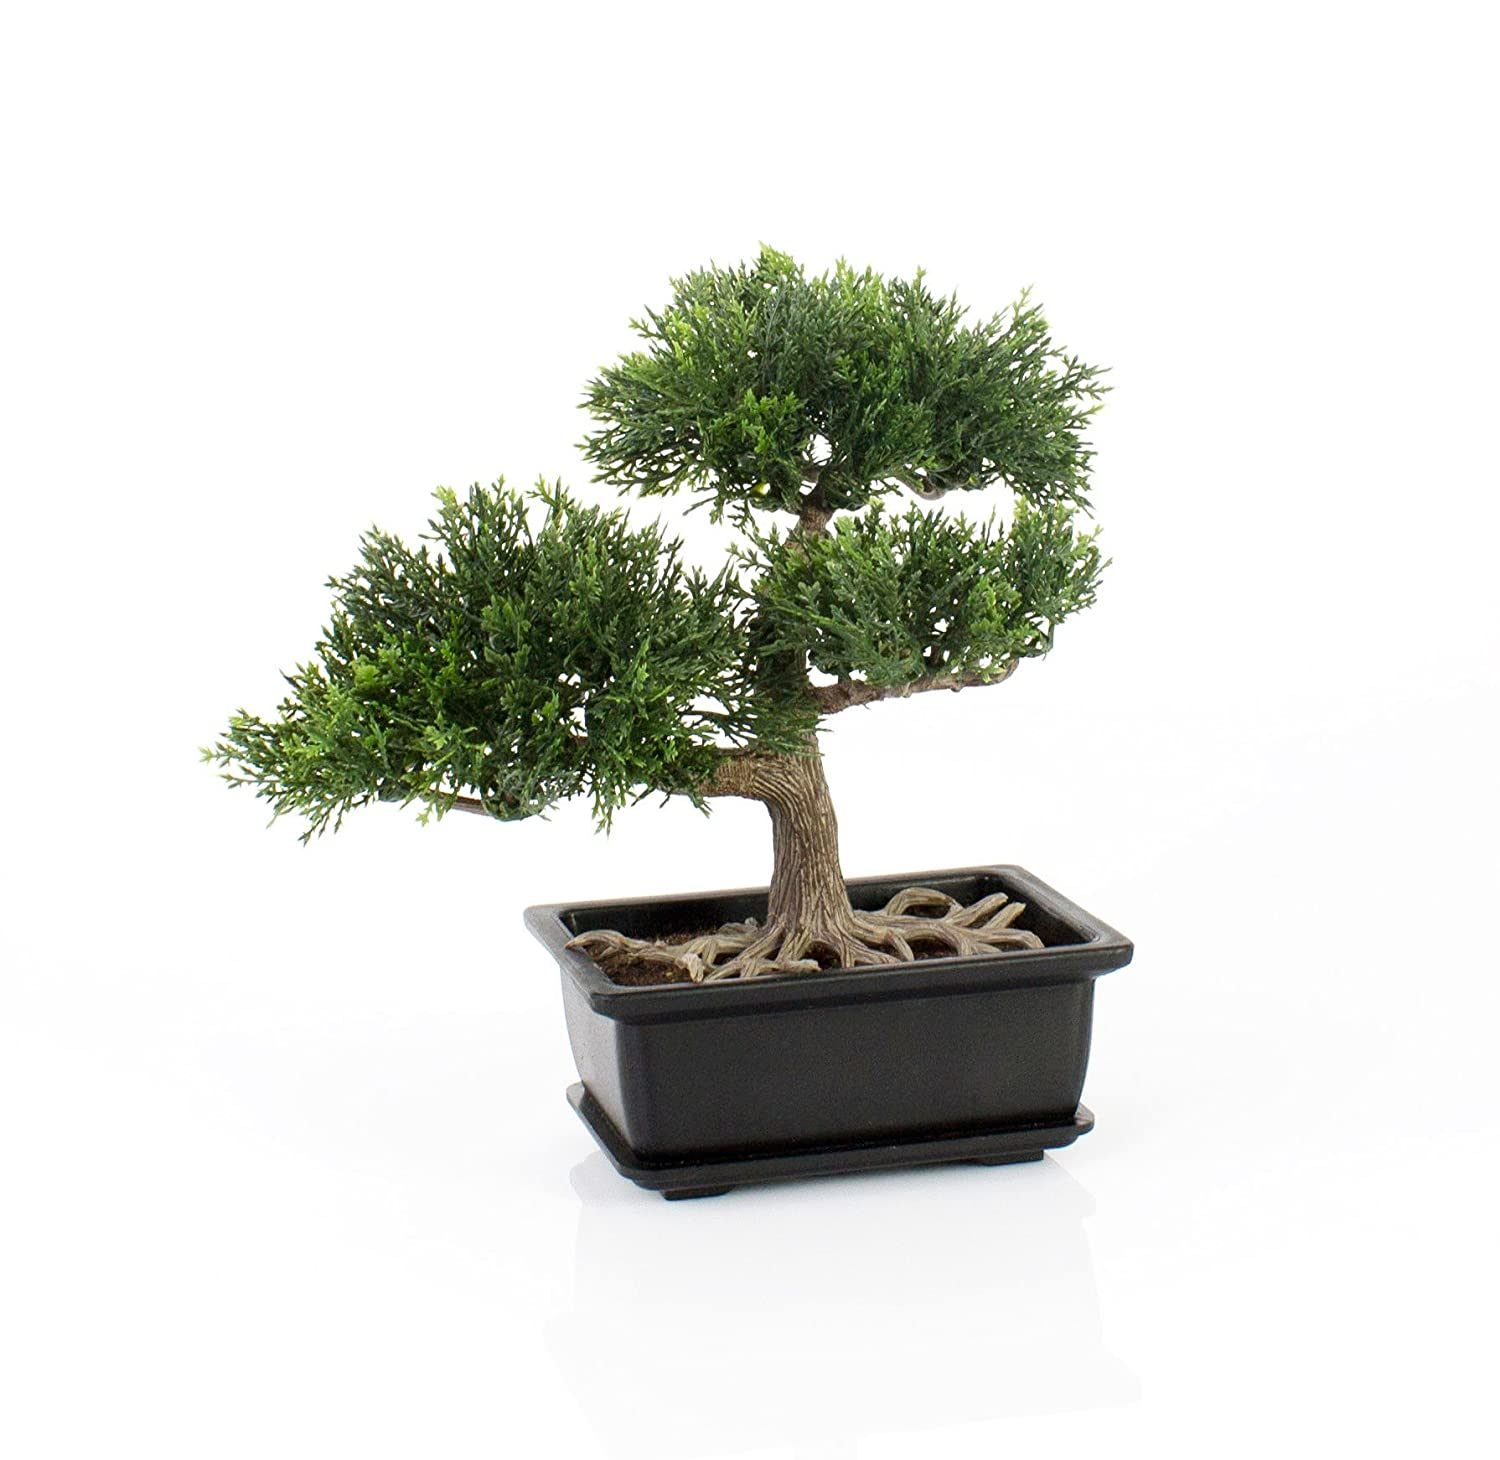 Artificial Bonsai Cedar in pot, 9